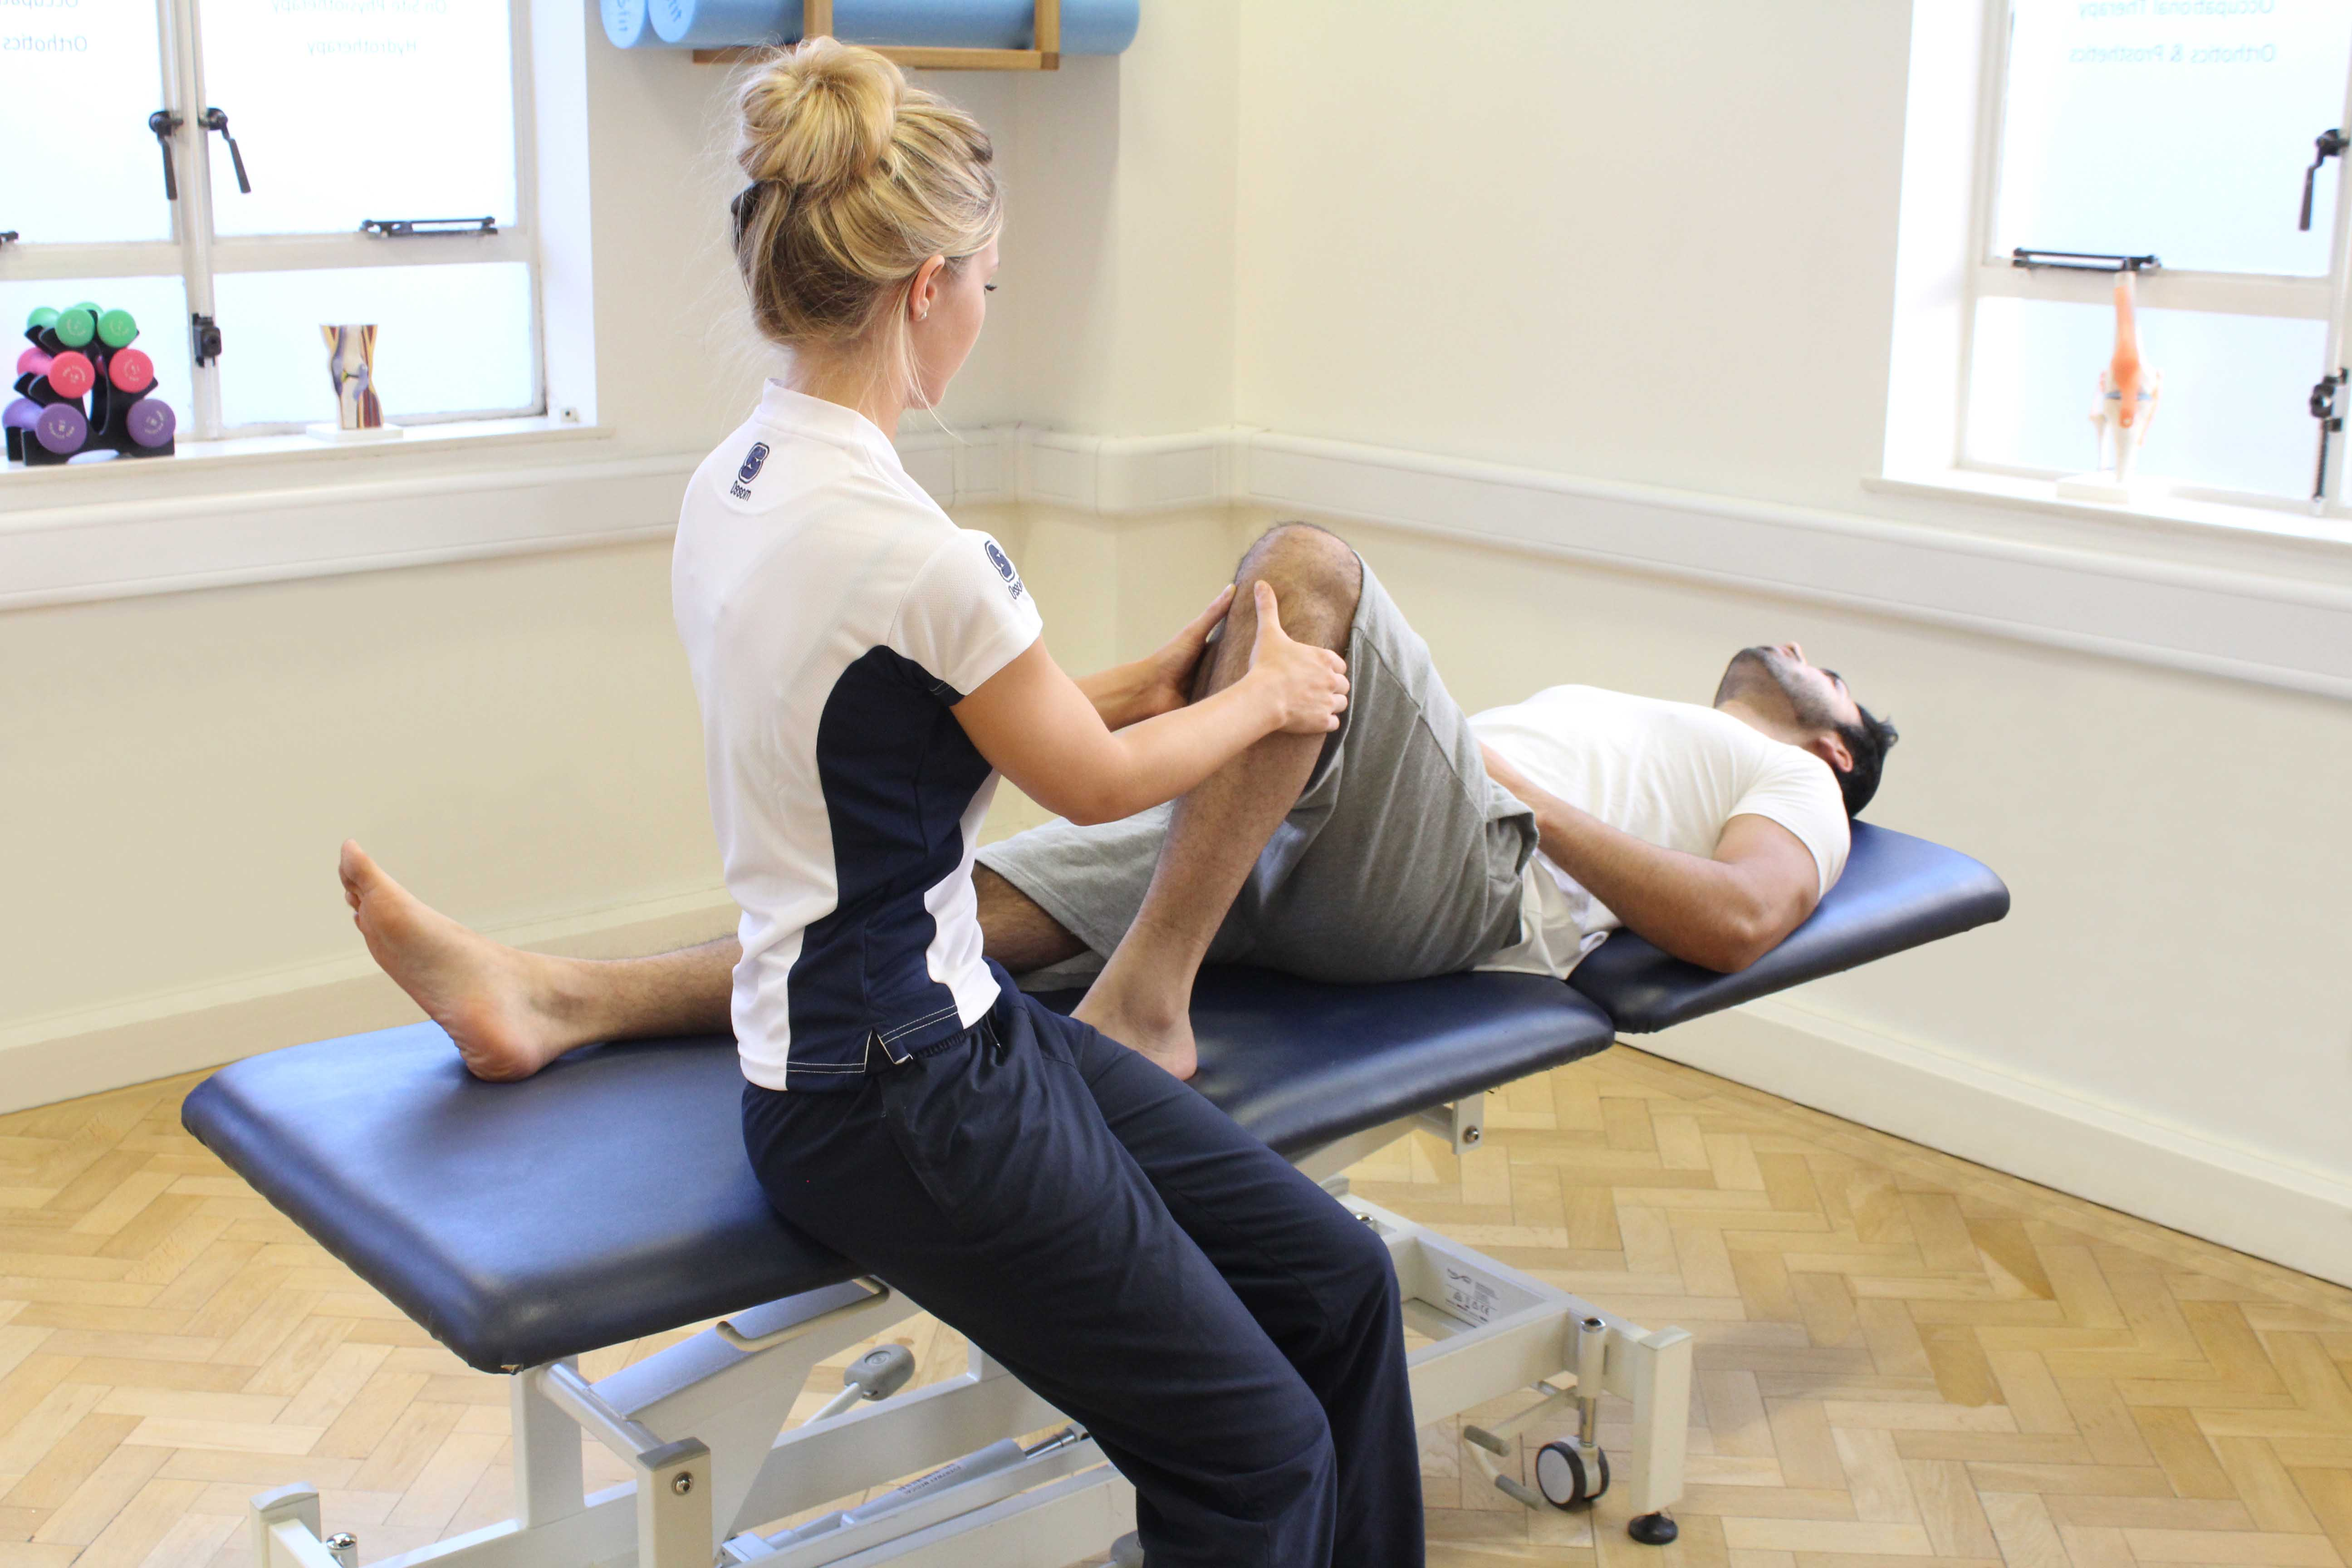 Therapist performing knee assessment